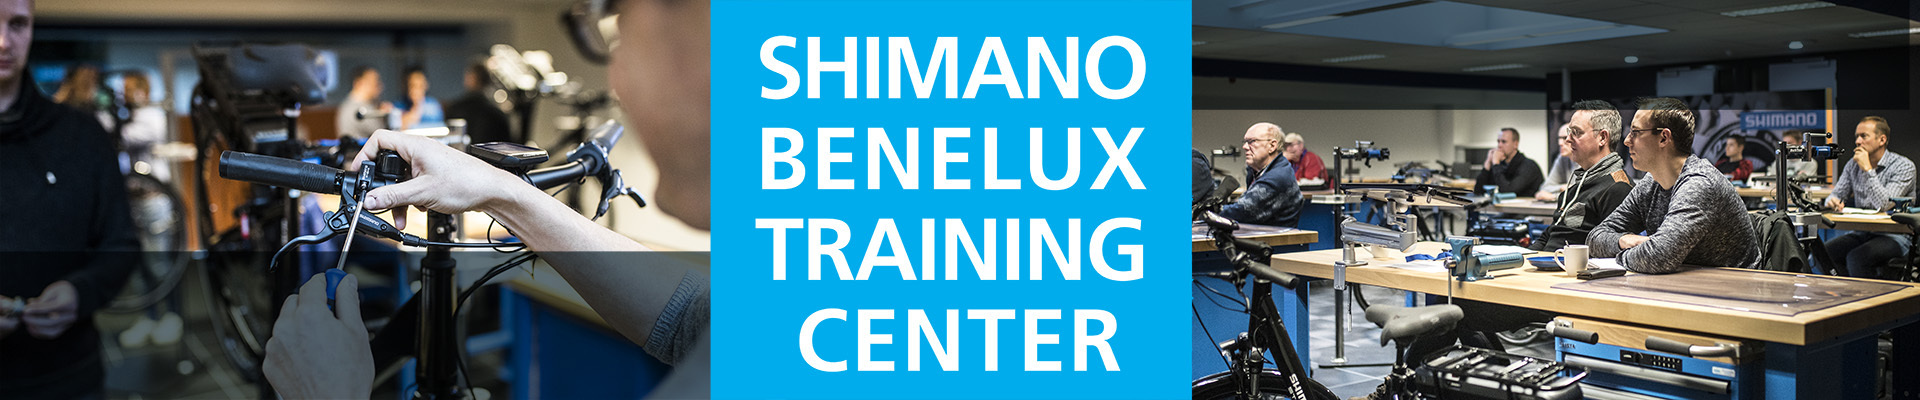 Shimano Benelux Training Center 2019 - 2020